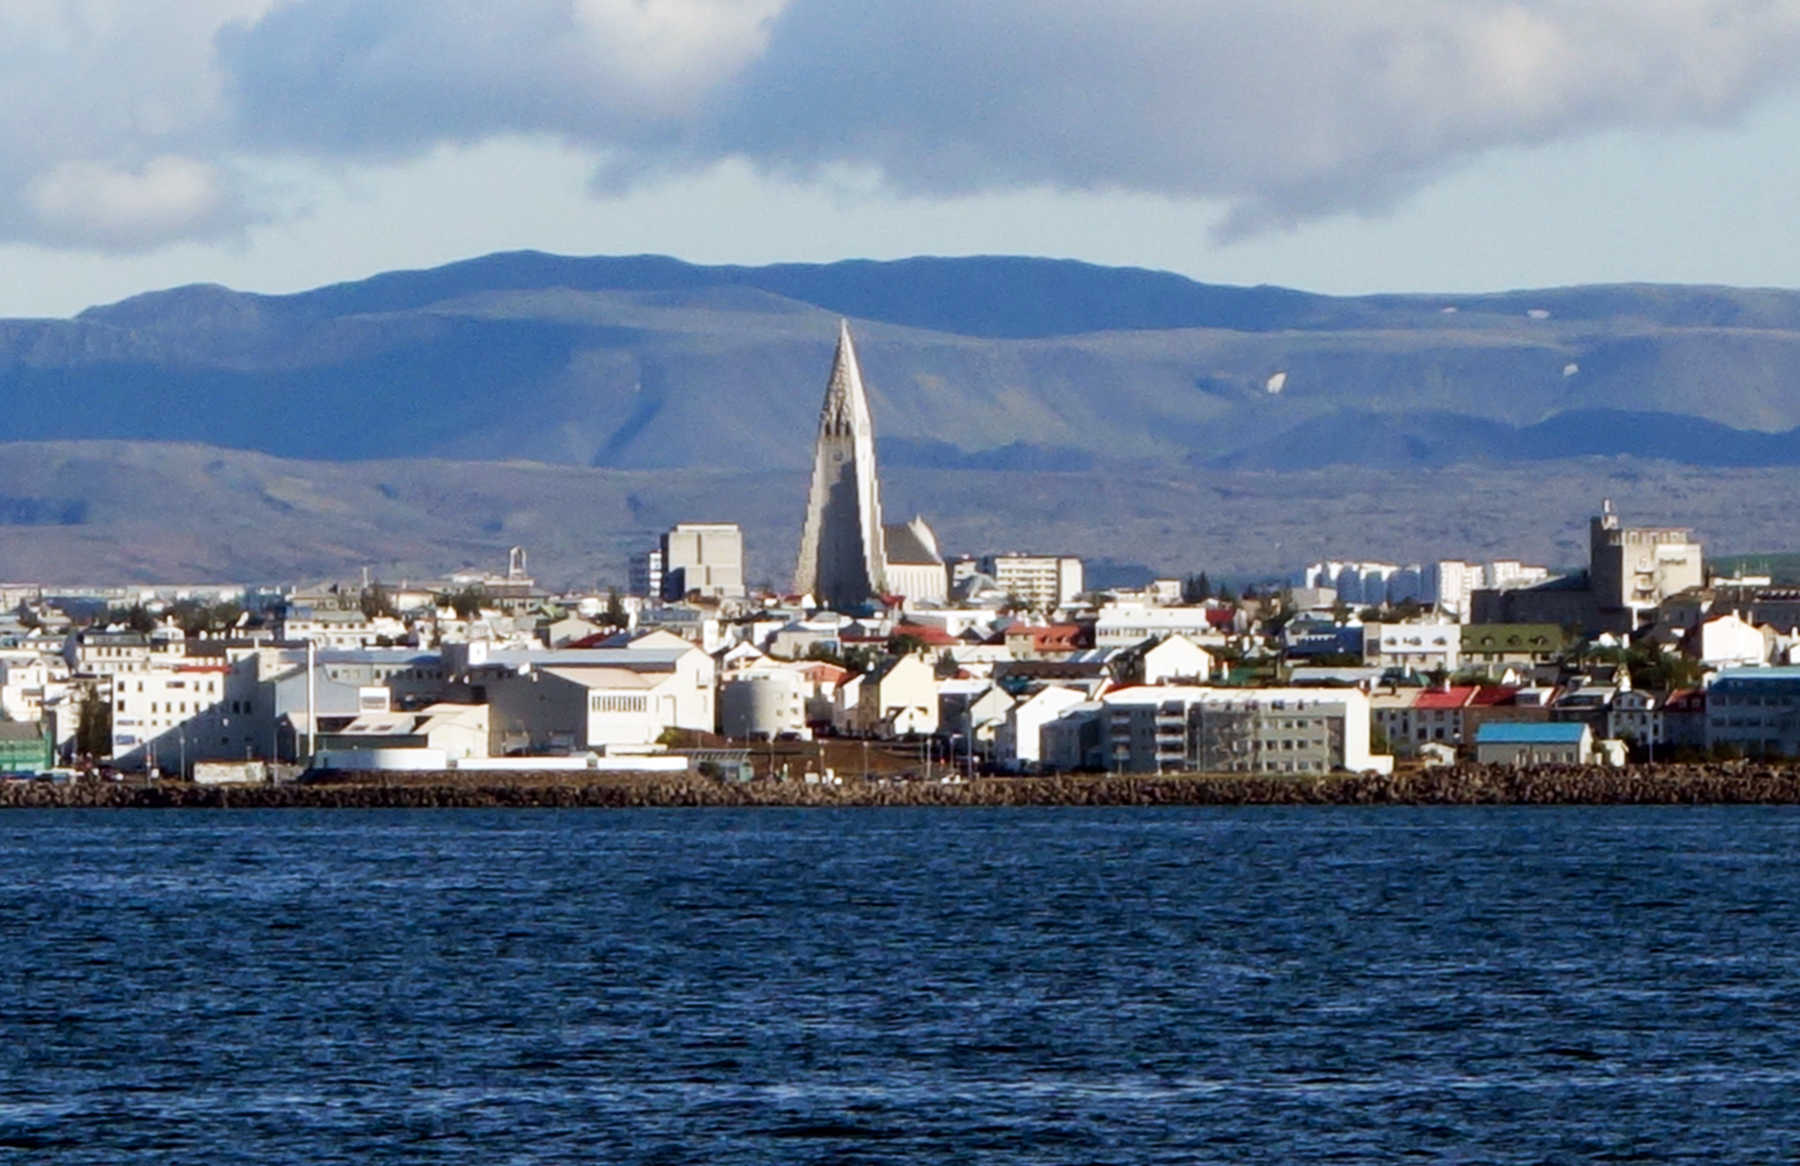 The skyline of Reykjavik, Iceland features Hallgrimskirkja, a towering Lutheran church